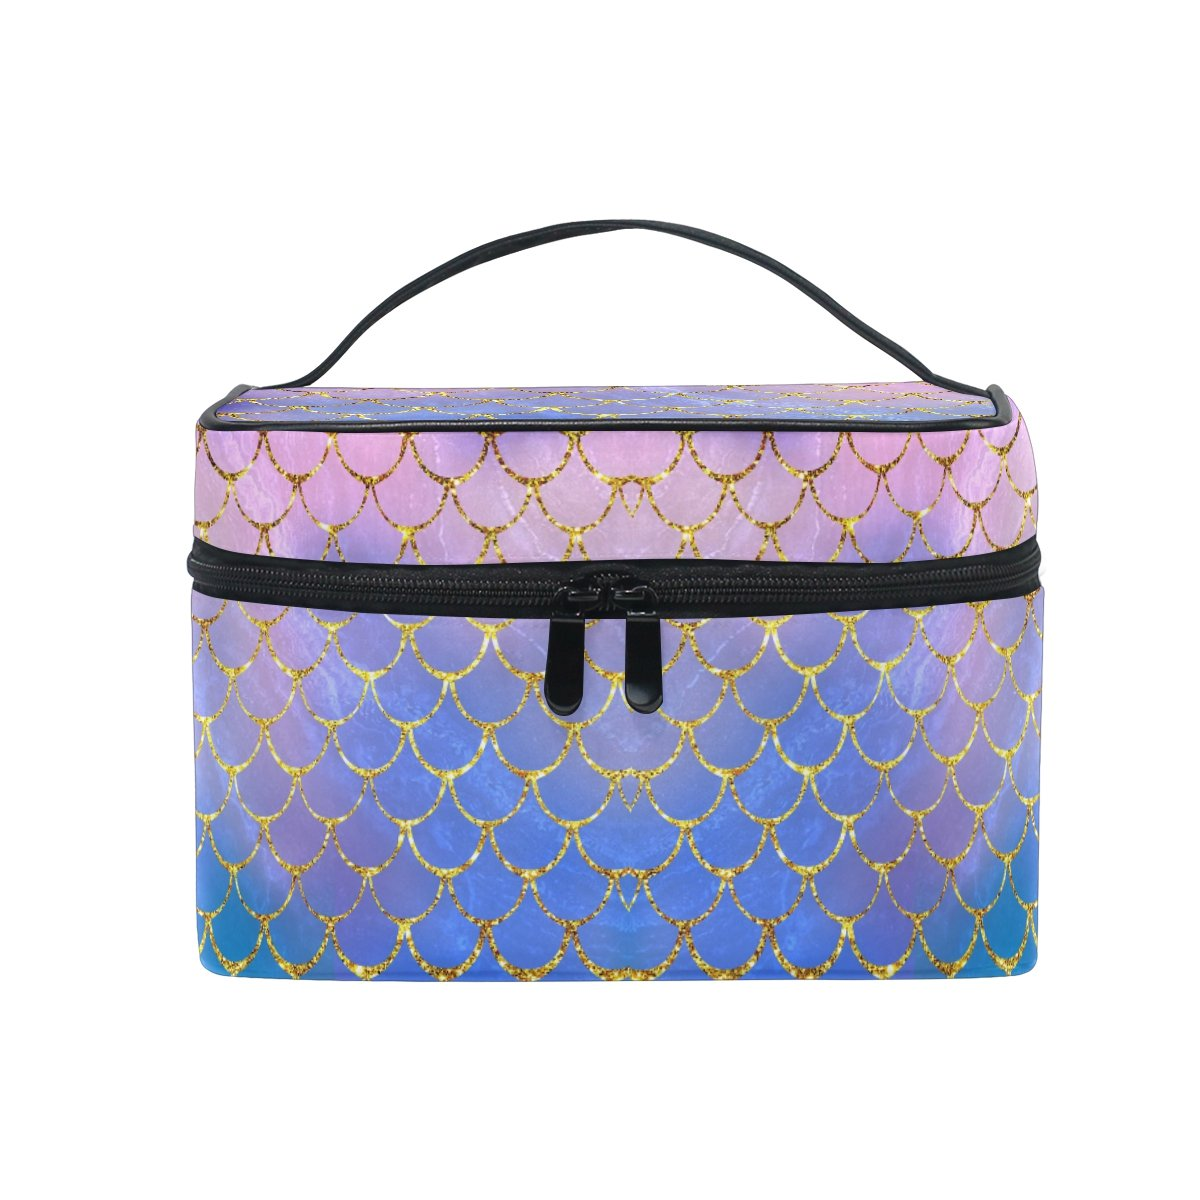 ZOEO Makeup Train Case Purple Mermaid Scales Marble Fish Light Summer Gold Korean Carrying Portable Zip Travel Cosmetic Brush Bag Organizer Large for Girls Women